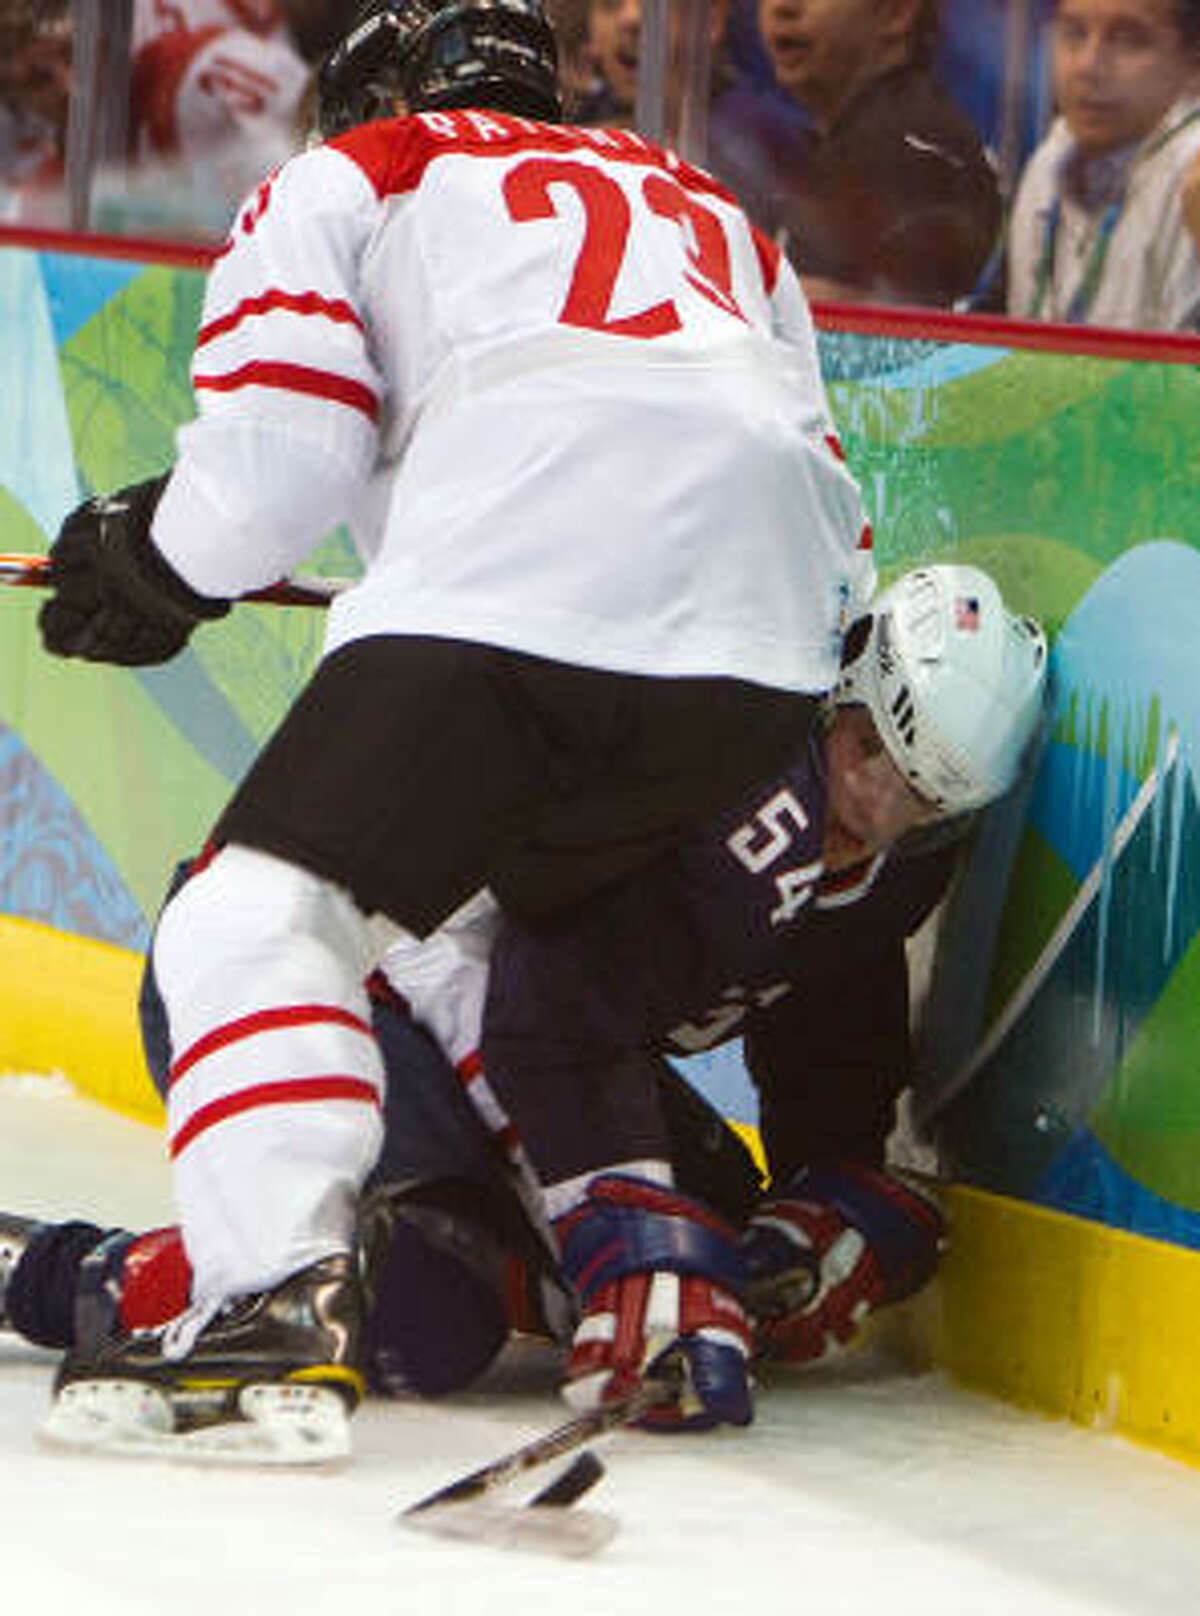 USA's Bobby Ryan mixes it up along the boards with Switzerland's Thierry Paterlini.